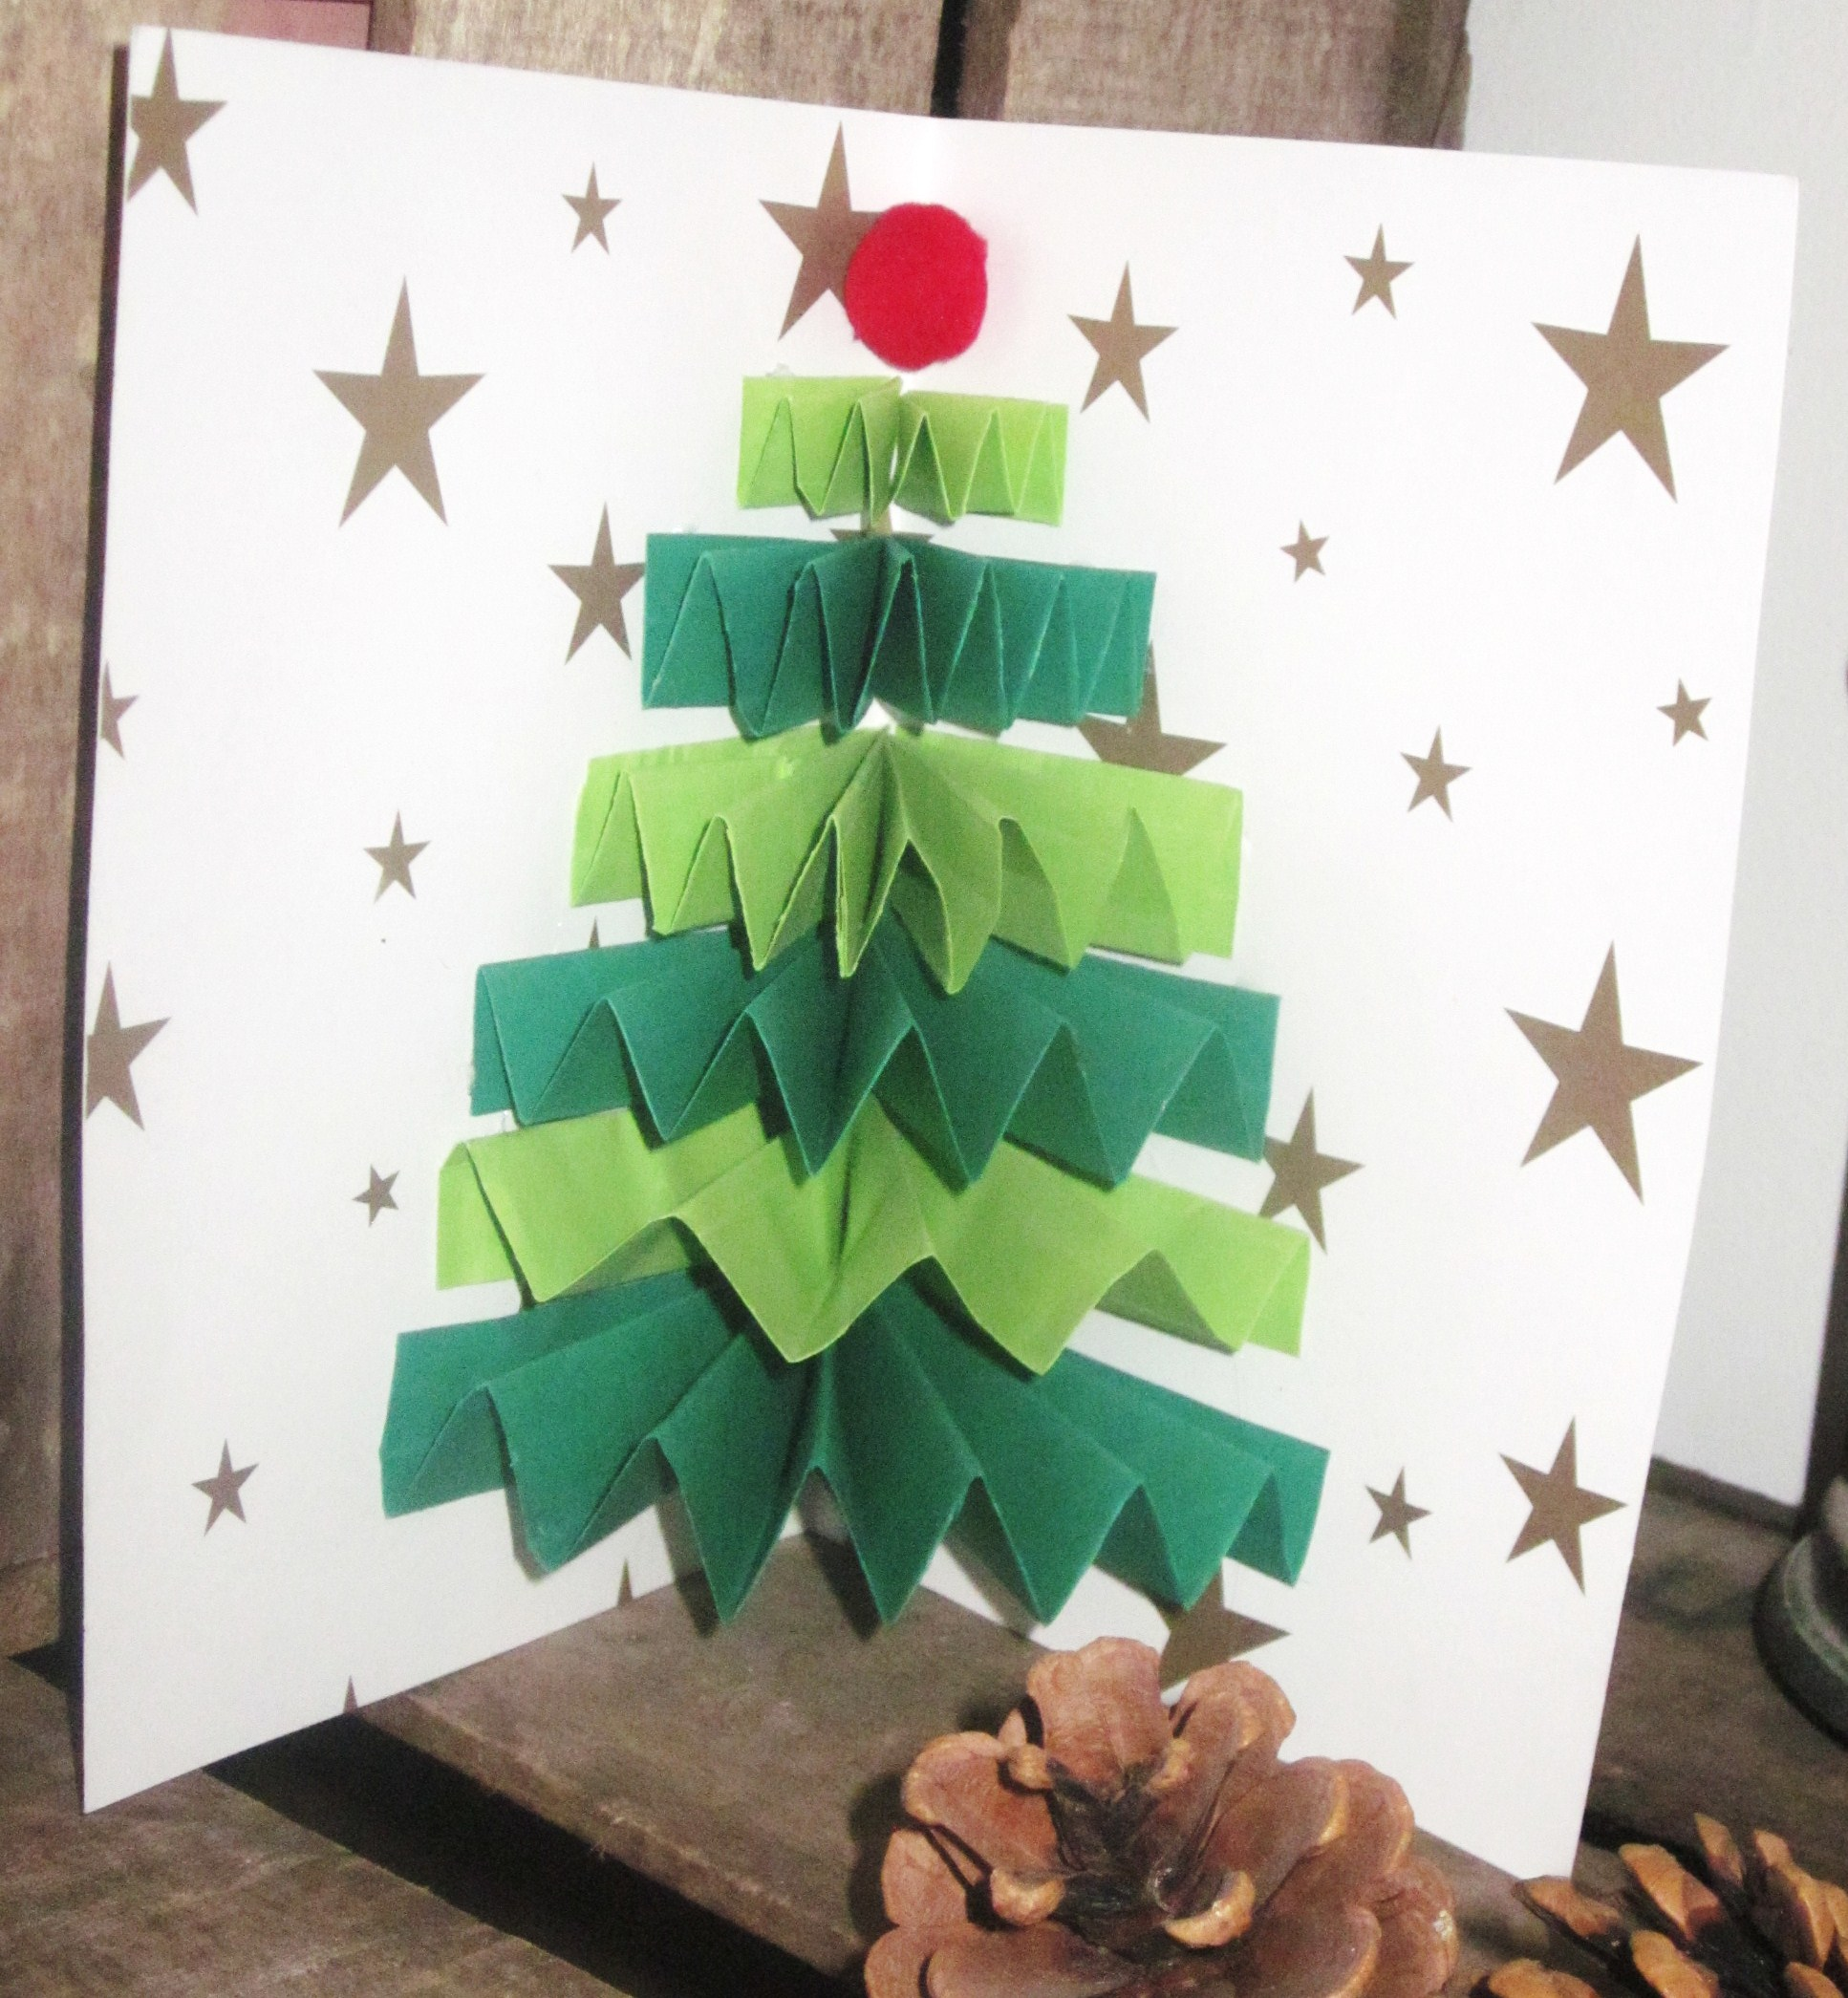 Diy carte sapin de no l accord on - Sapin de noel diy ...